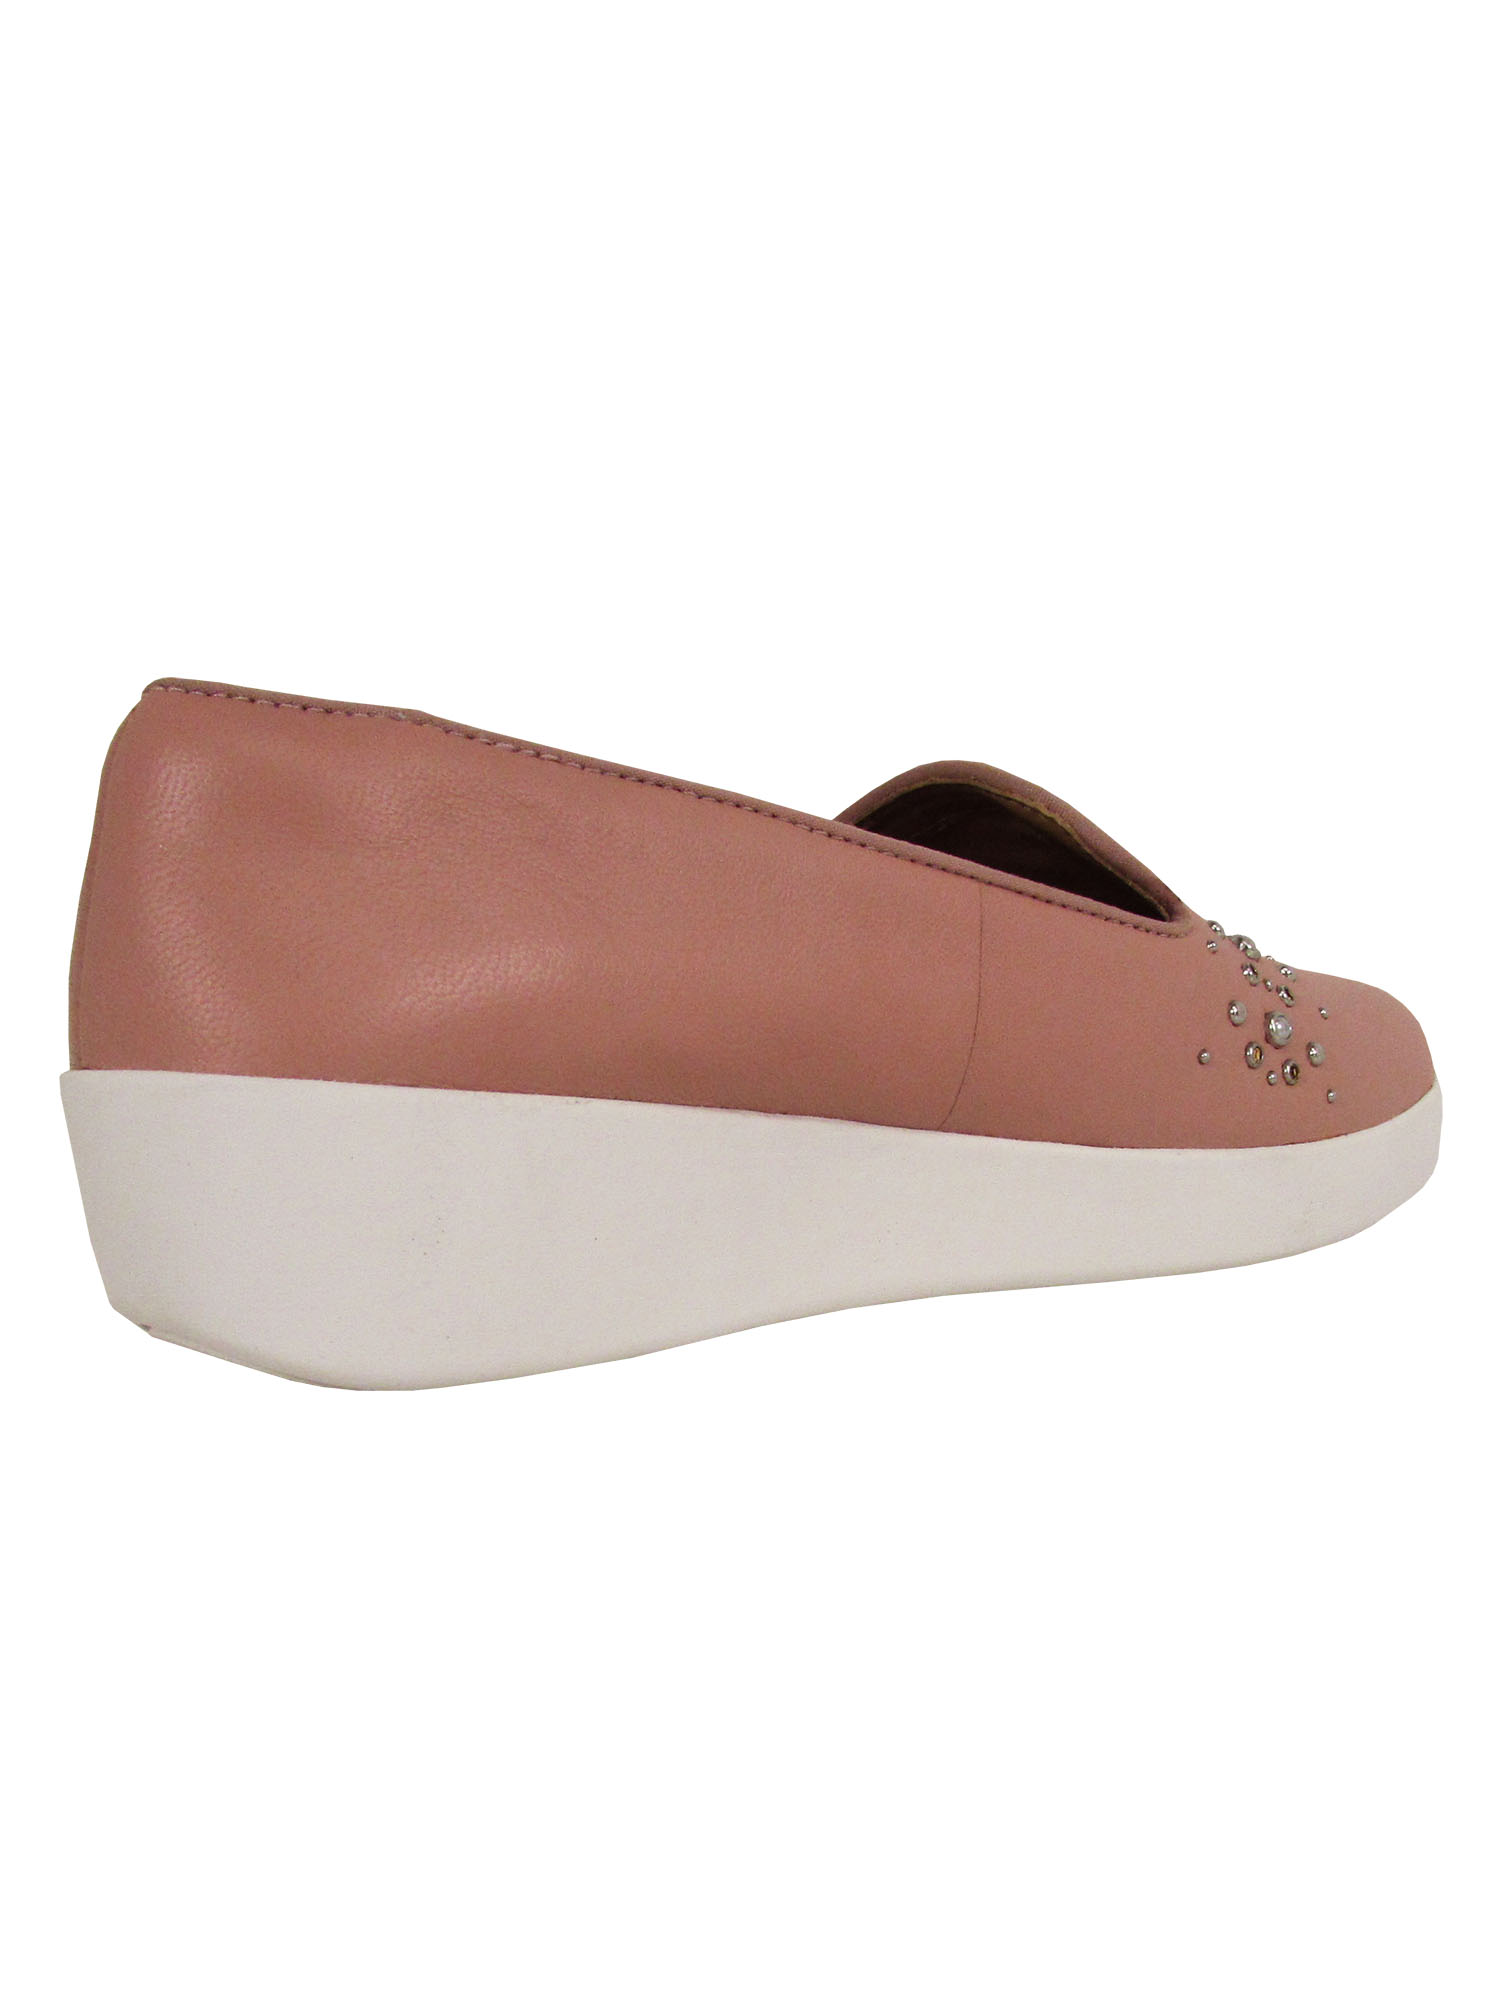 Fitflop-Womens-Audrey-Pearl-Stud-Smoking-Slipper-Shoes thumbnail 4